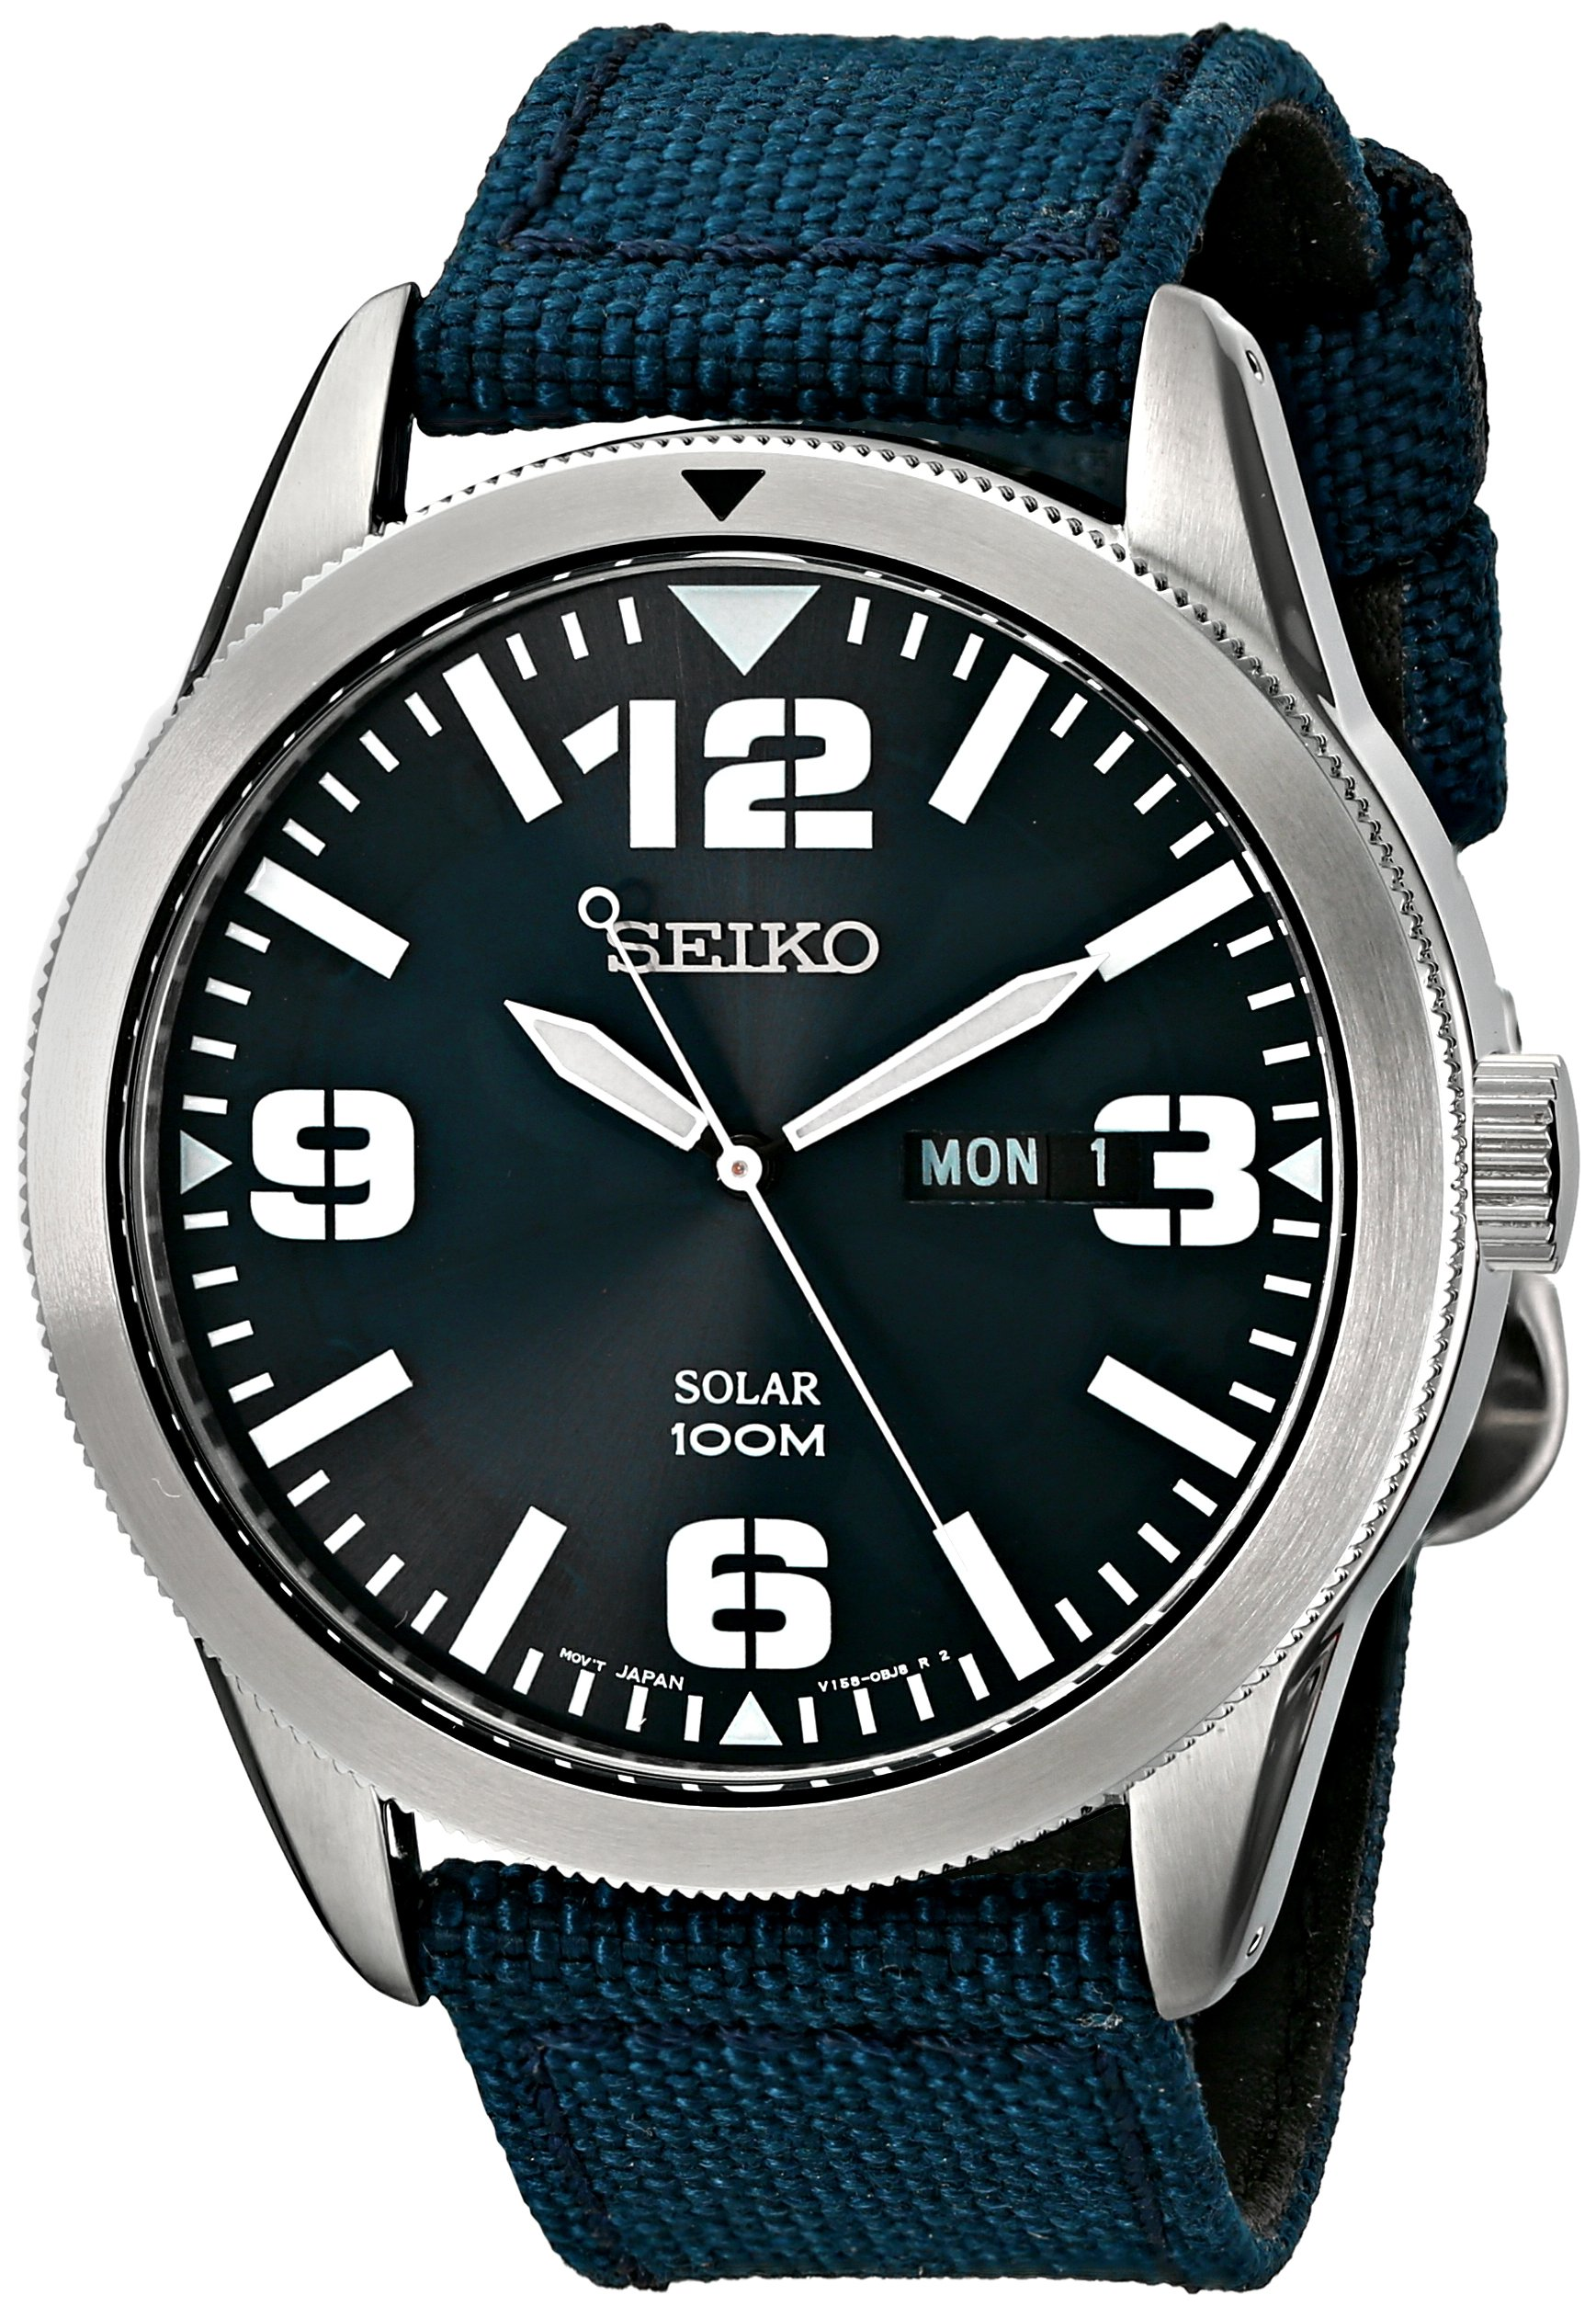 Seiko Men's SNE329 Sport Solar-Powered Stainless Steel Watch with Blue Nylon Band by SEIKO